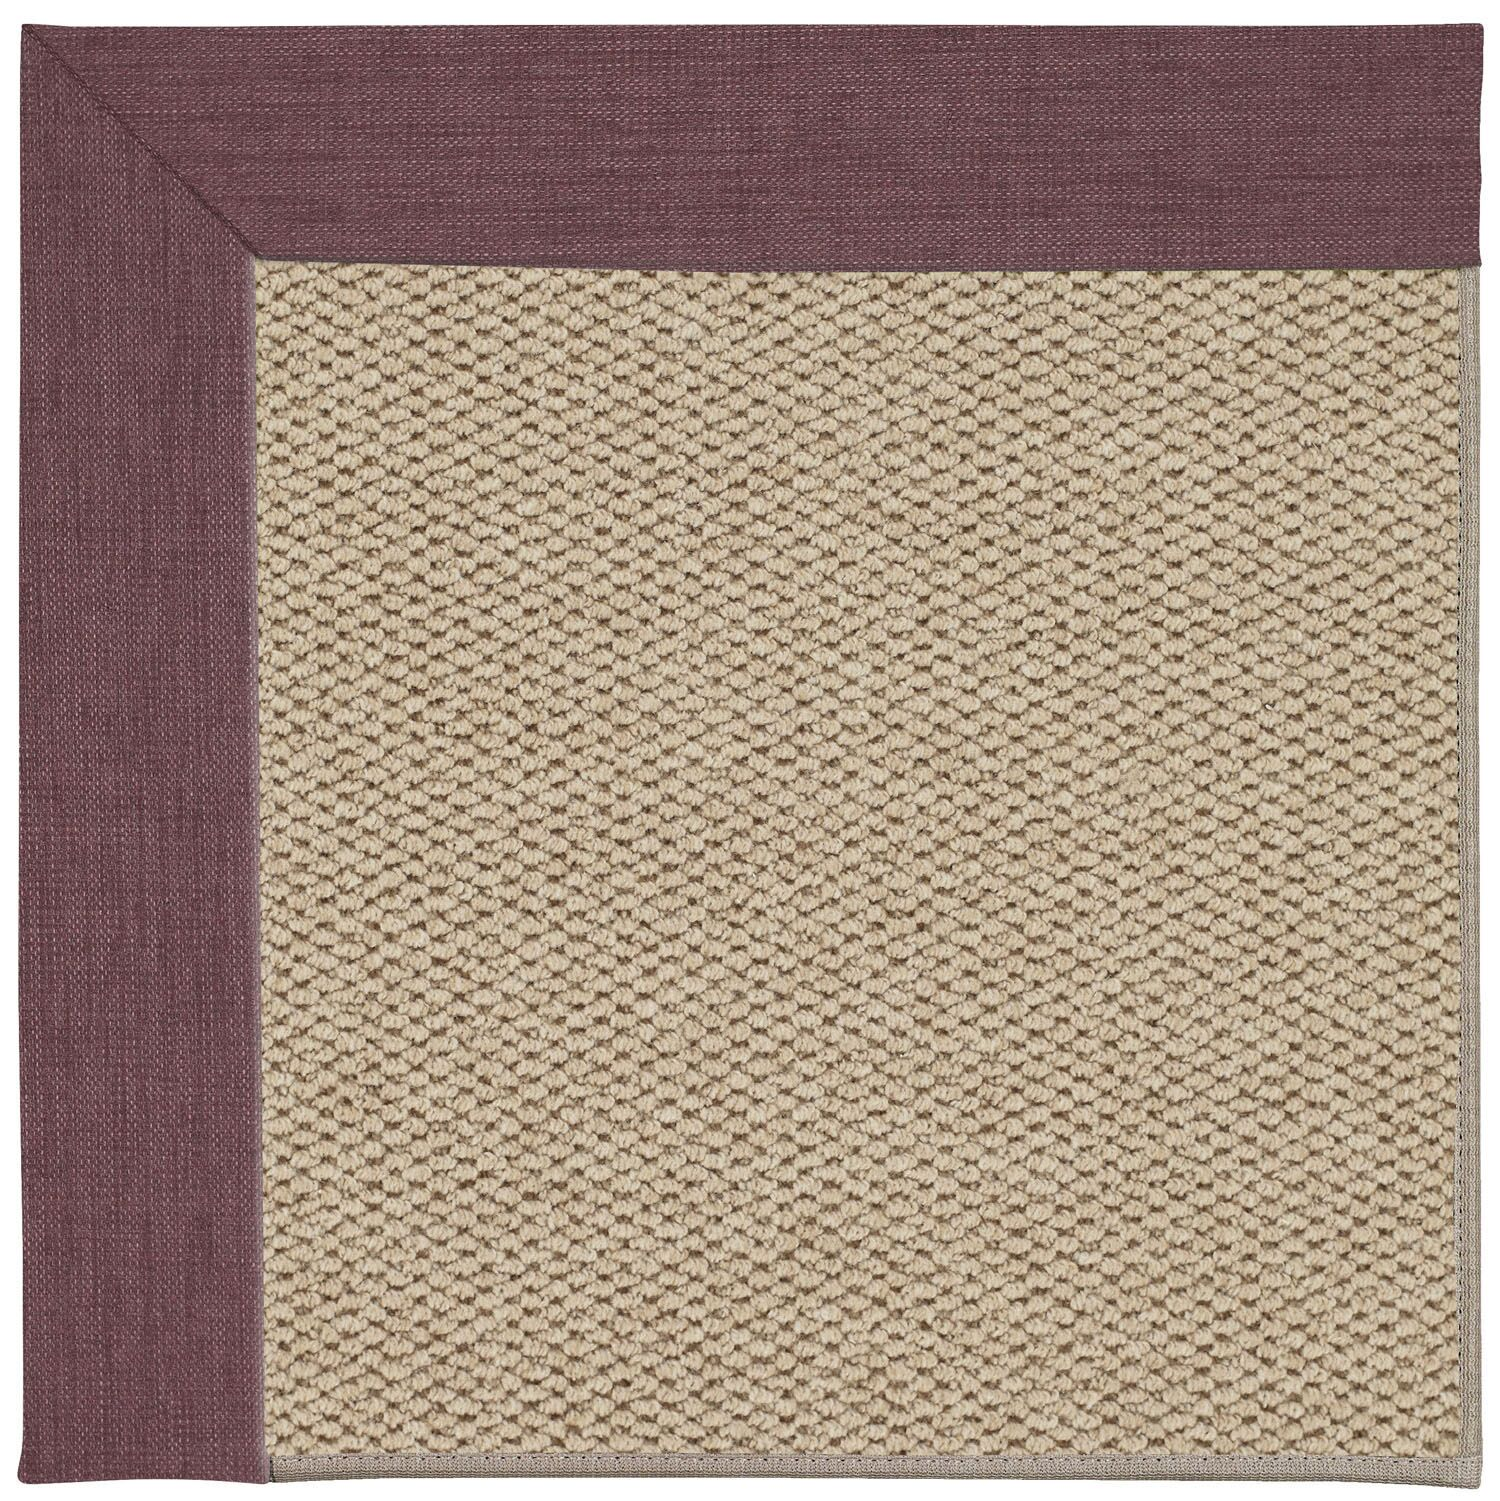 Barrett Champagne Machine Tufted Bluebell/Beige Area Rug Rug Size: Rectangle 5' x 8'